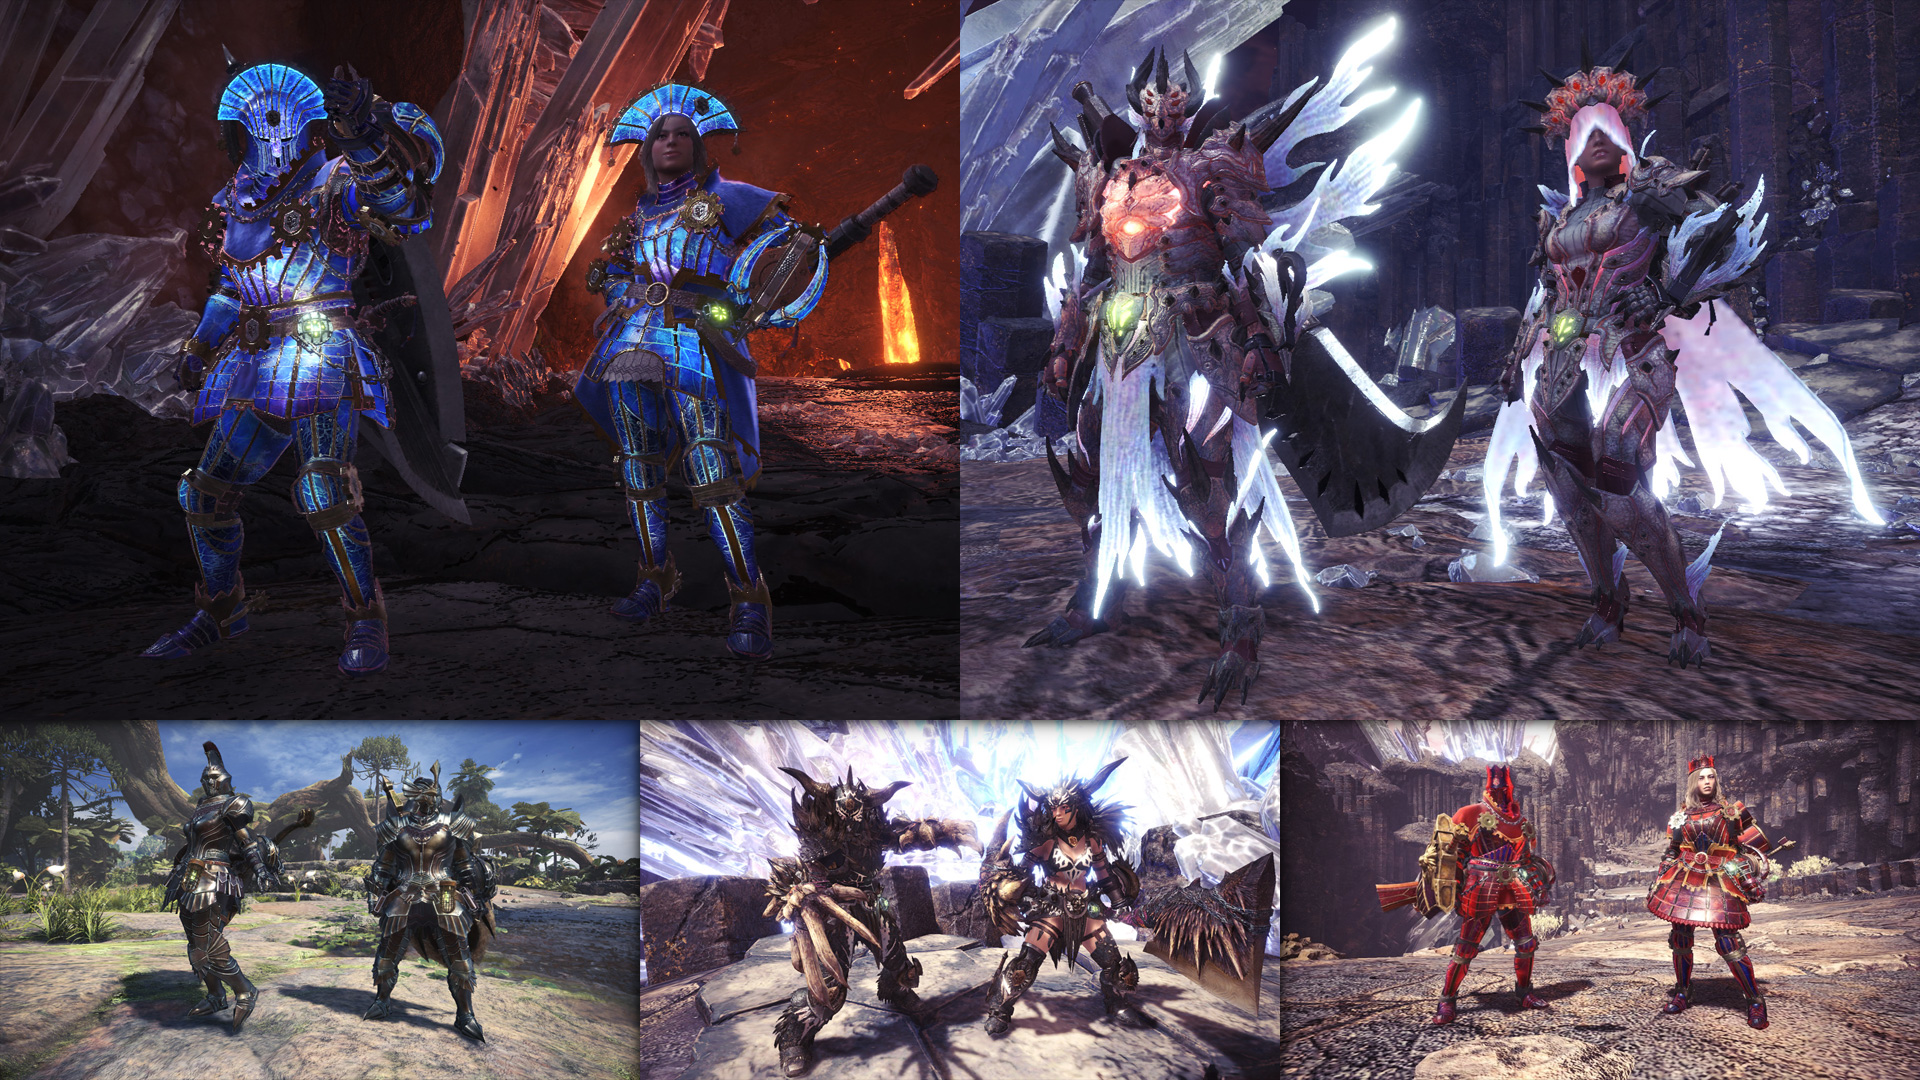 Monster Hunter On Twitter Lots More High Rank Armor Are Now Available As Layered Armor In Iceborne Including The Prestigious Elder Dragon G Armor Sets Hunt High Rank Arch Tempered Elder Dragons Monster hunter world wiki guide: hunt high rank arch tempered elder dragons